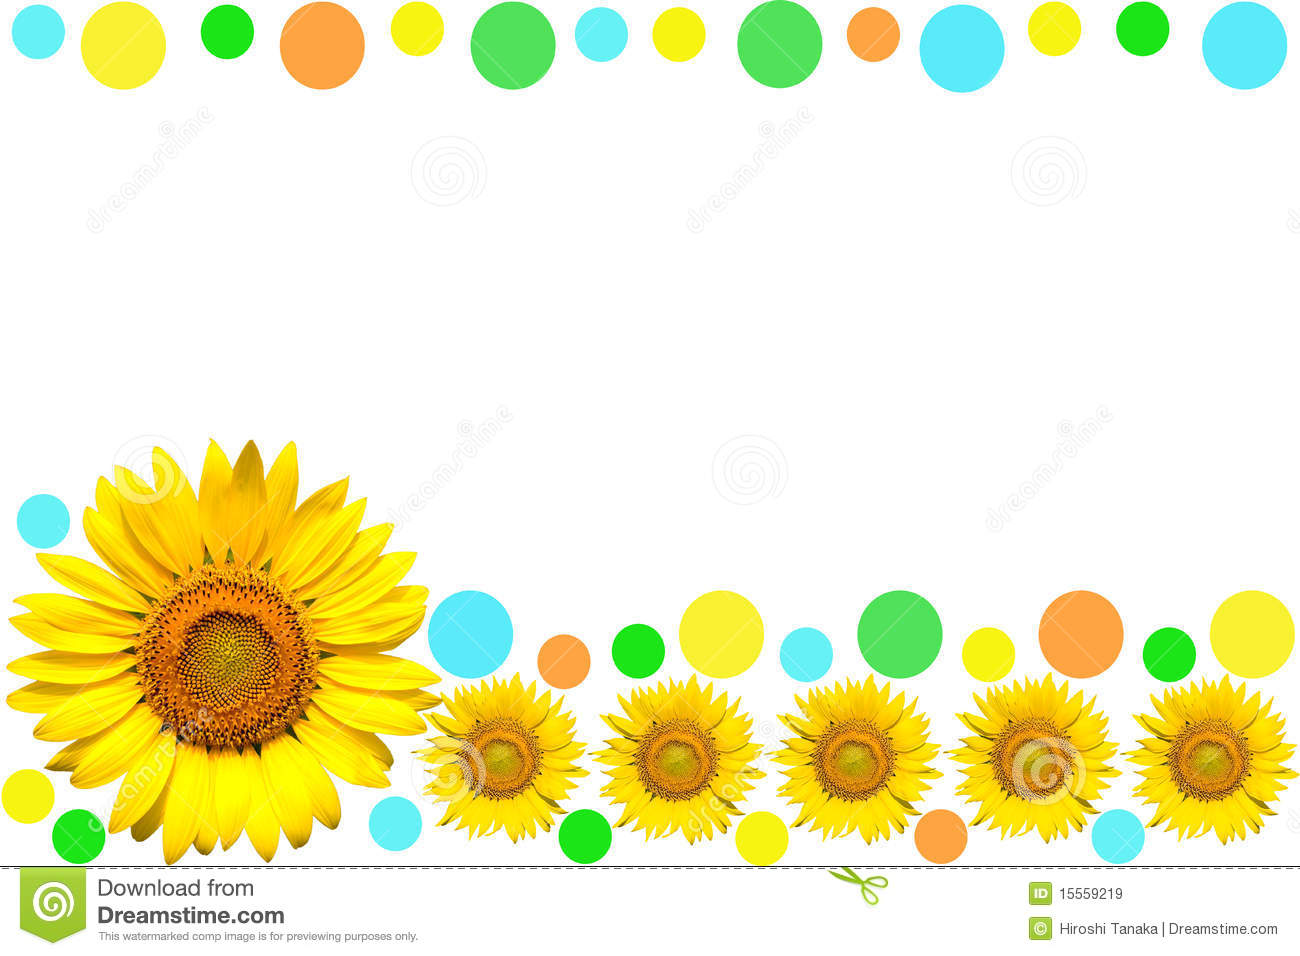 Frame clipart sunflower Panda Sunflower frame Images Free